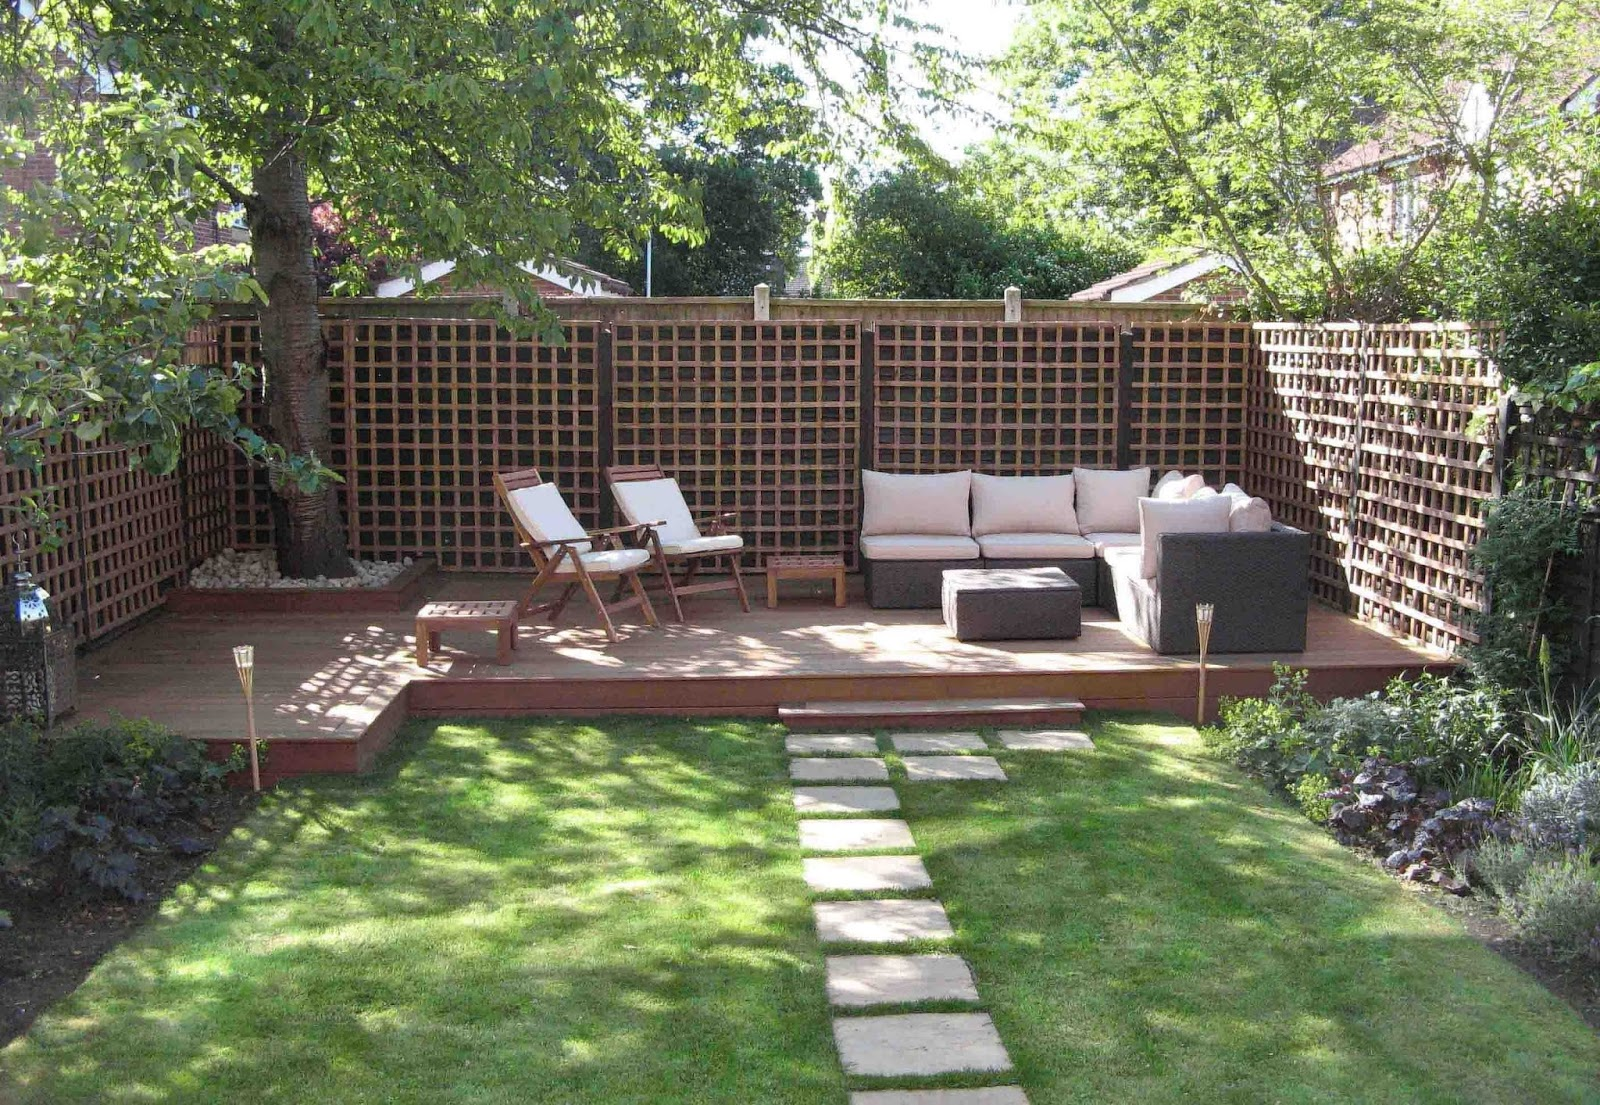 Garden decking away from the house